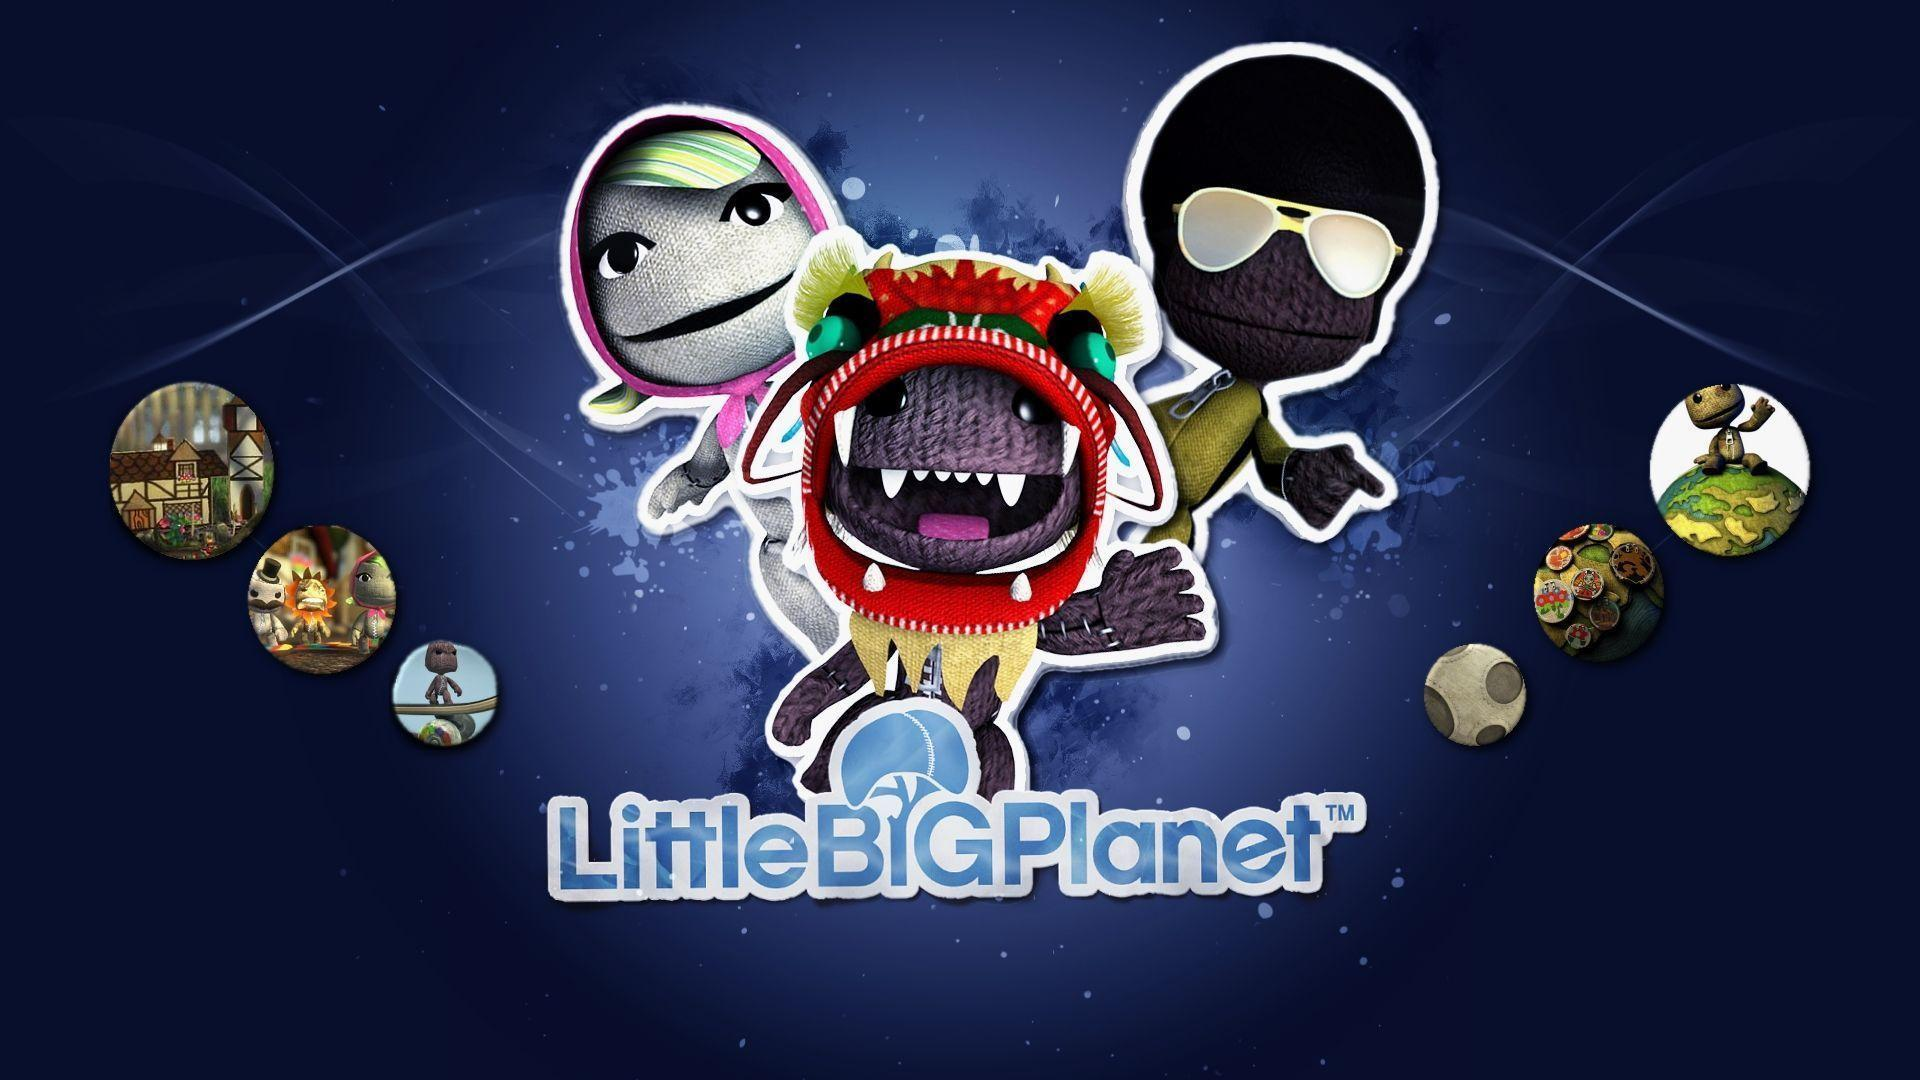 LittleBIGPlanet Wallpapers HD